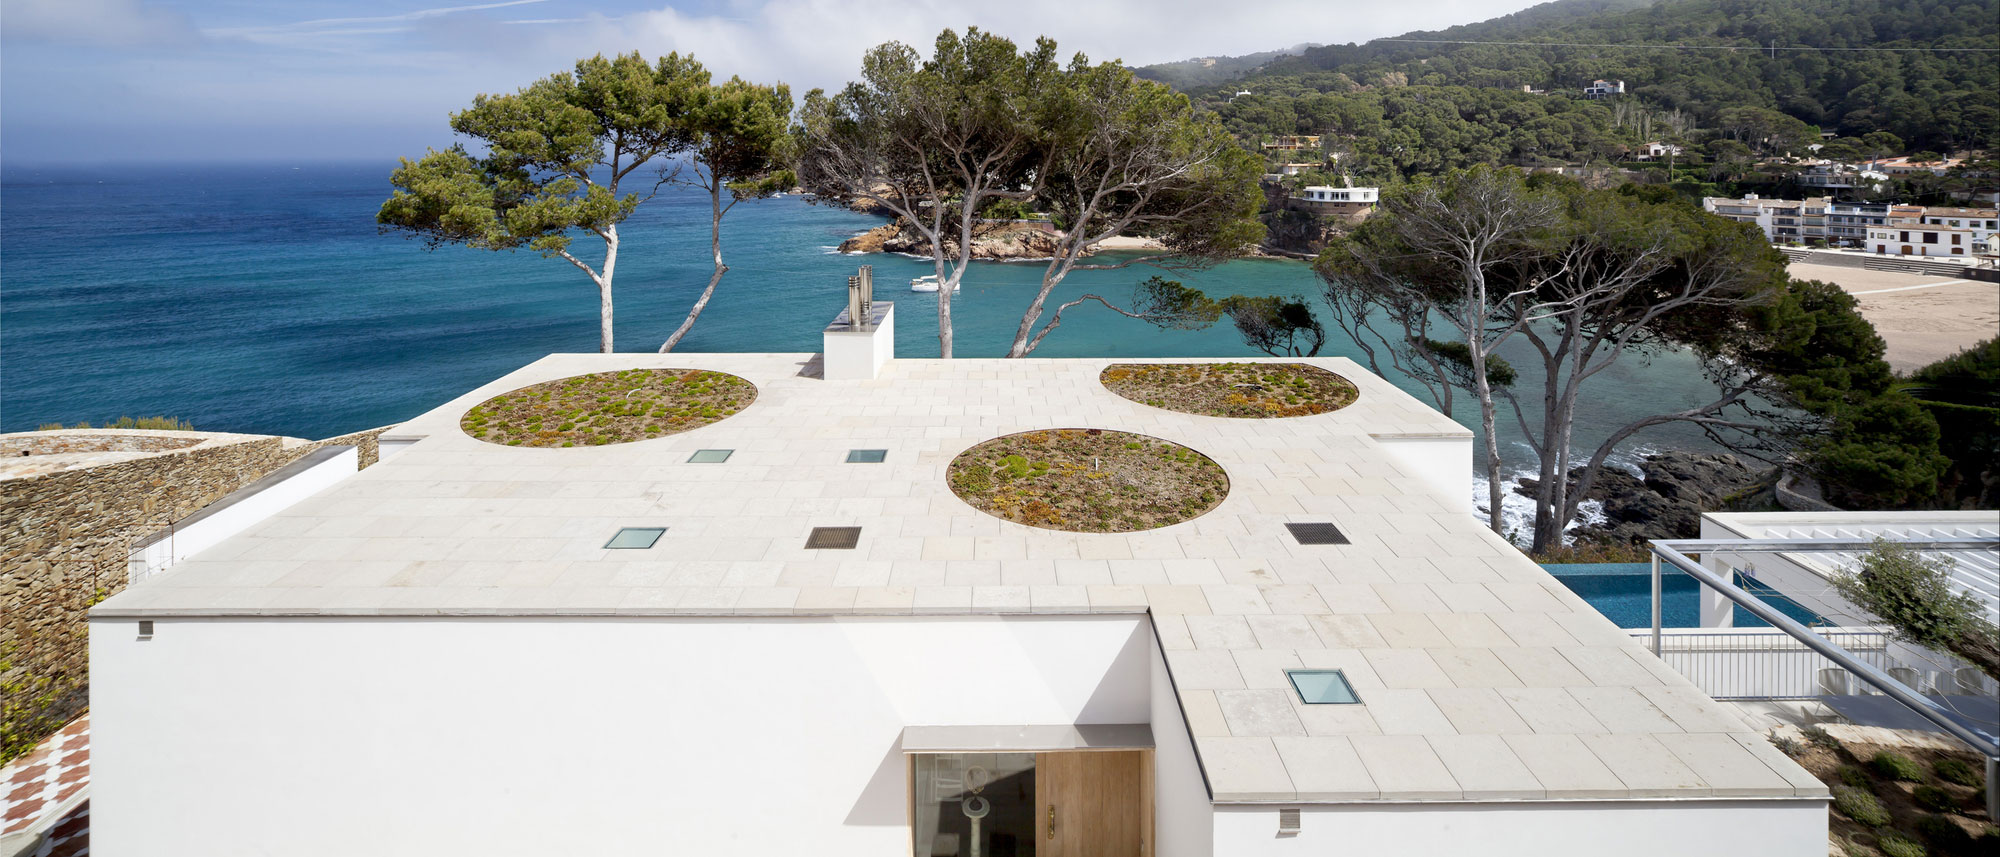 Roof, Waterfront House in Costa Brava, Spain